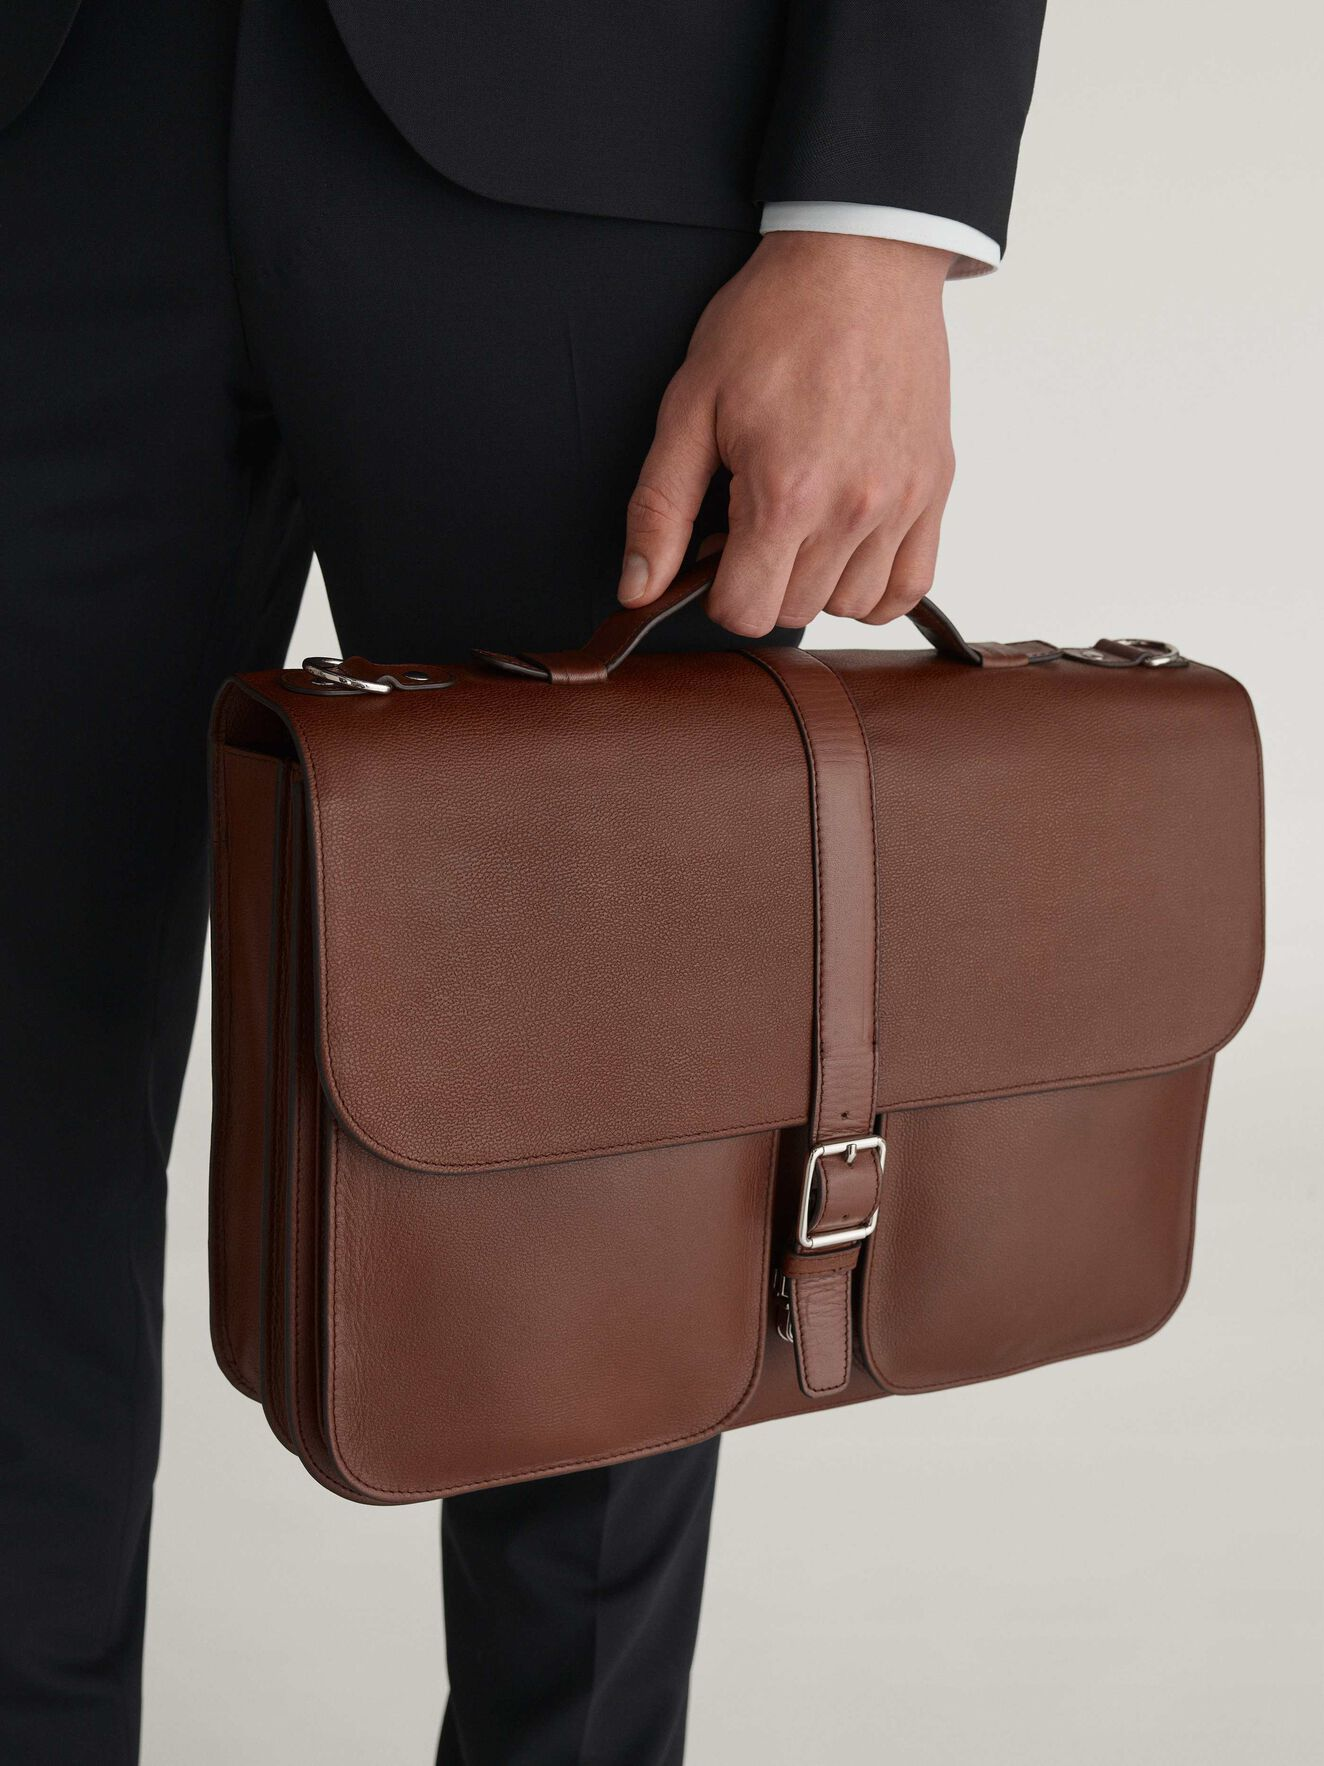 Lucha Briefcase in Medium Brown from Tiger of Sweden